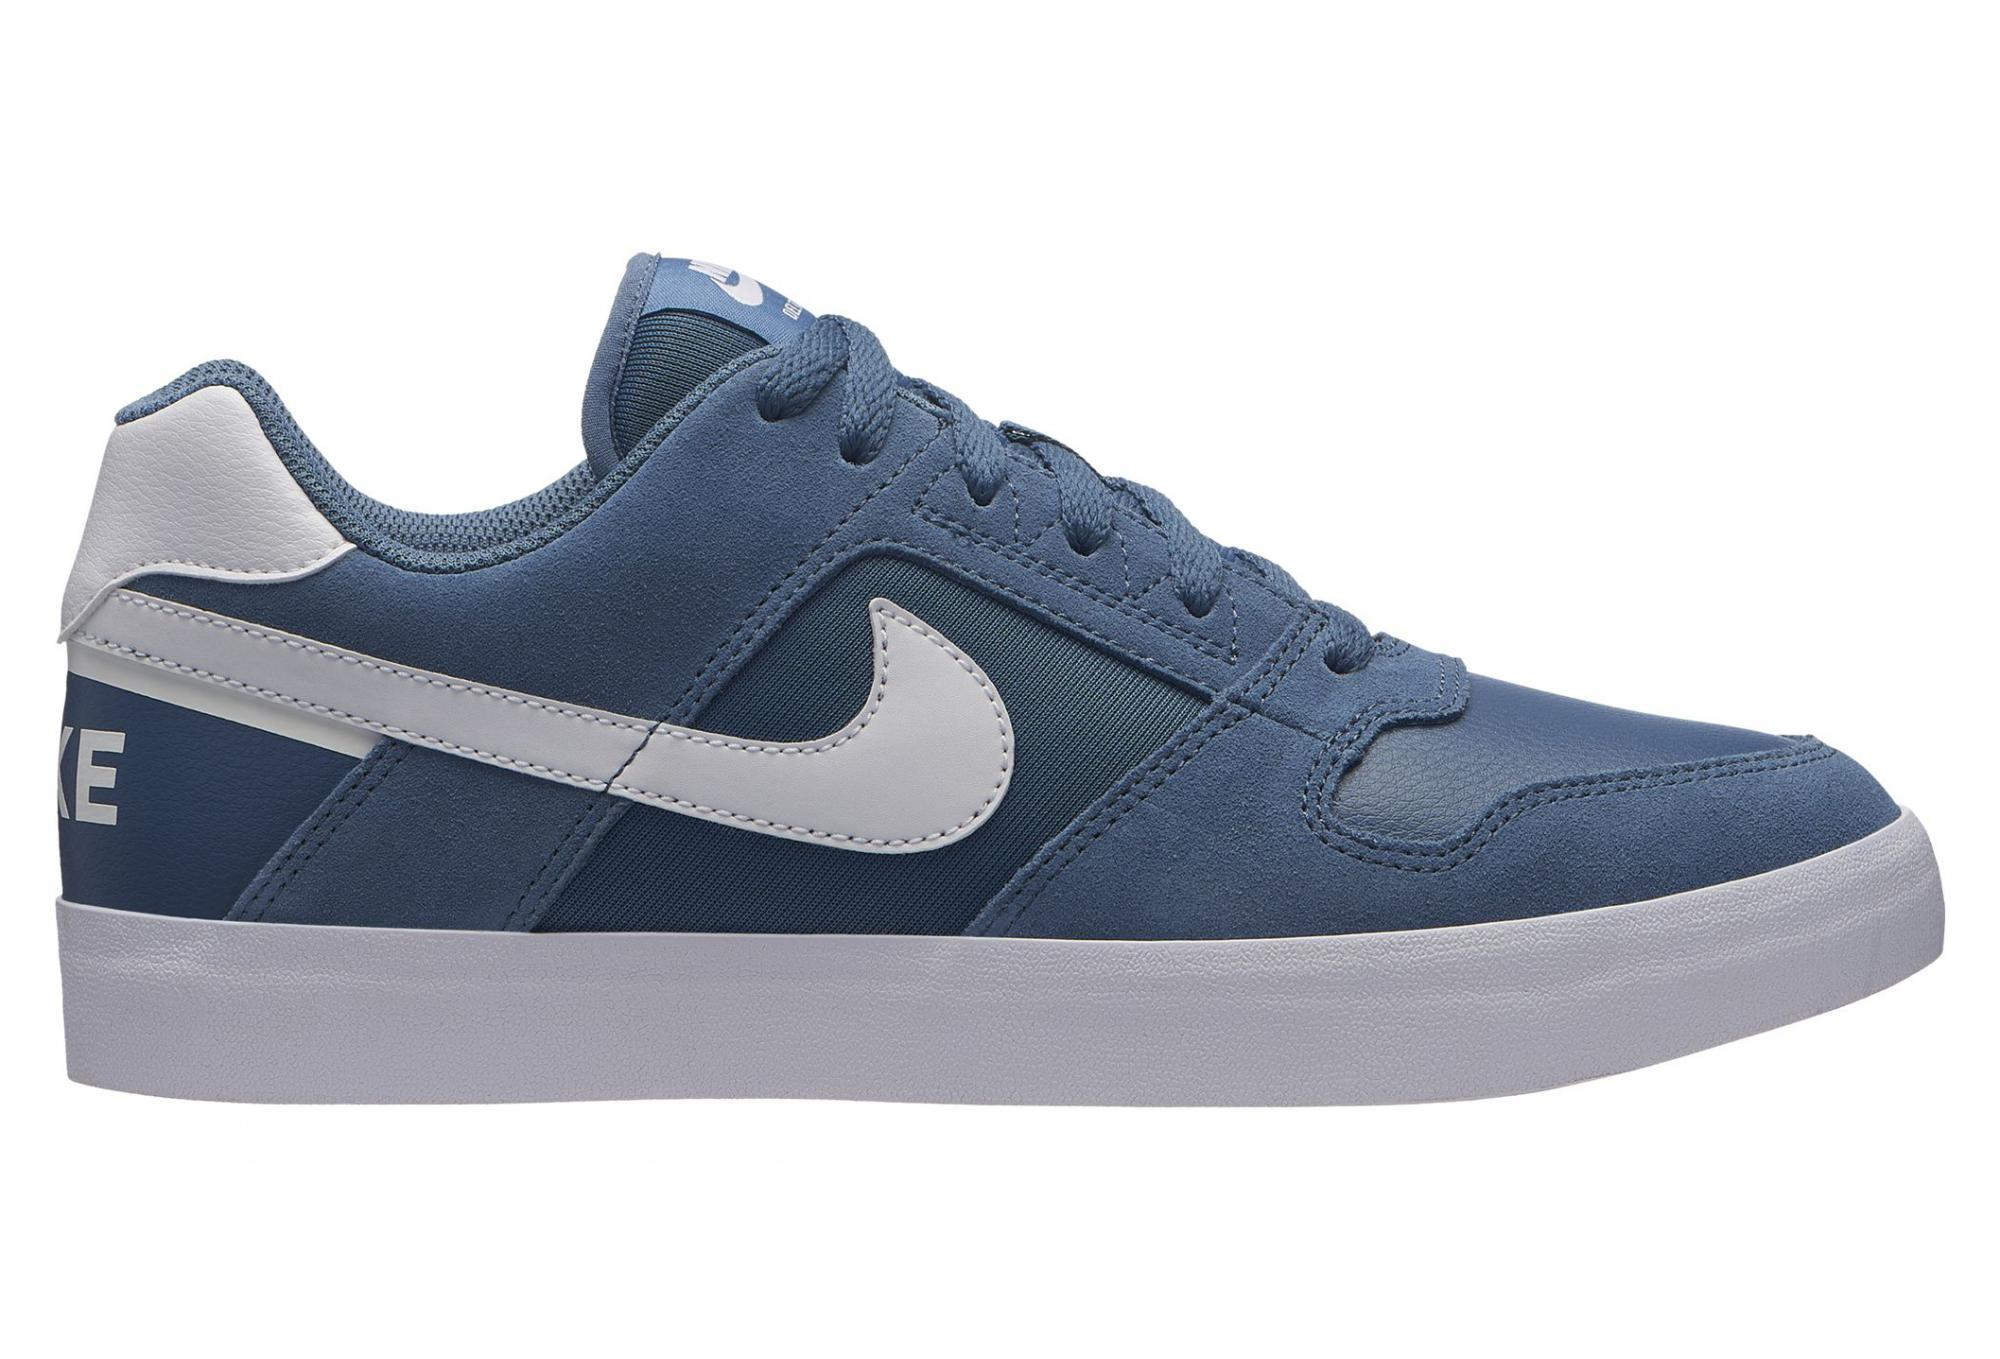 Nike SB Delta Force Vulc Shoe Blue White | Alltricks.com